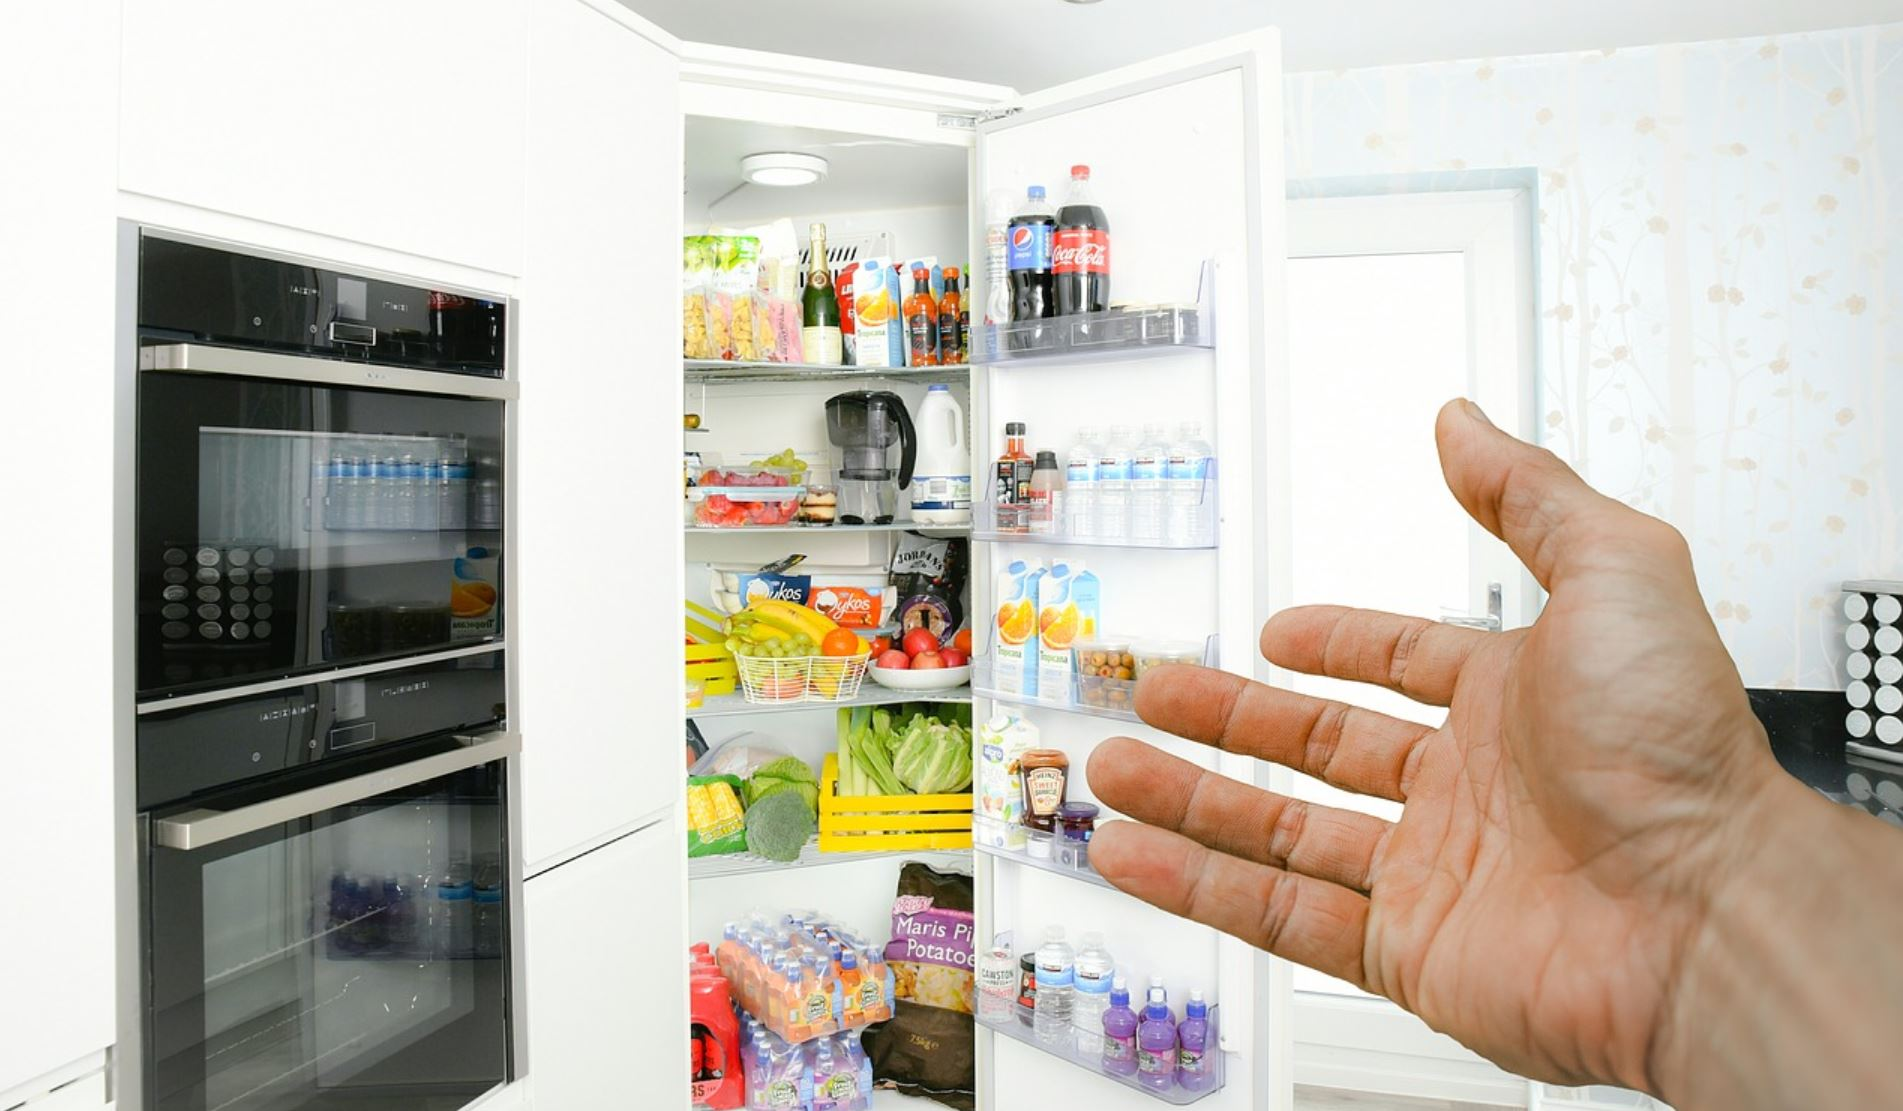 Class Action Settlement for LG Refrigerators: Approx. 1.6 Million Models Have Defect That Causes Them to Stop Cooling